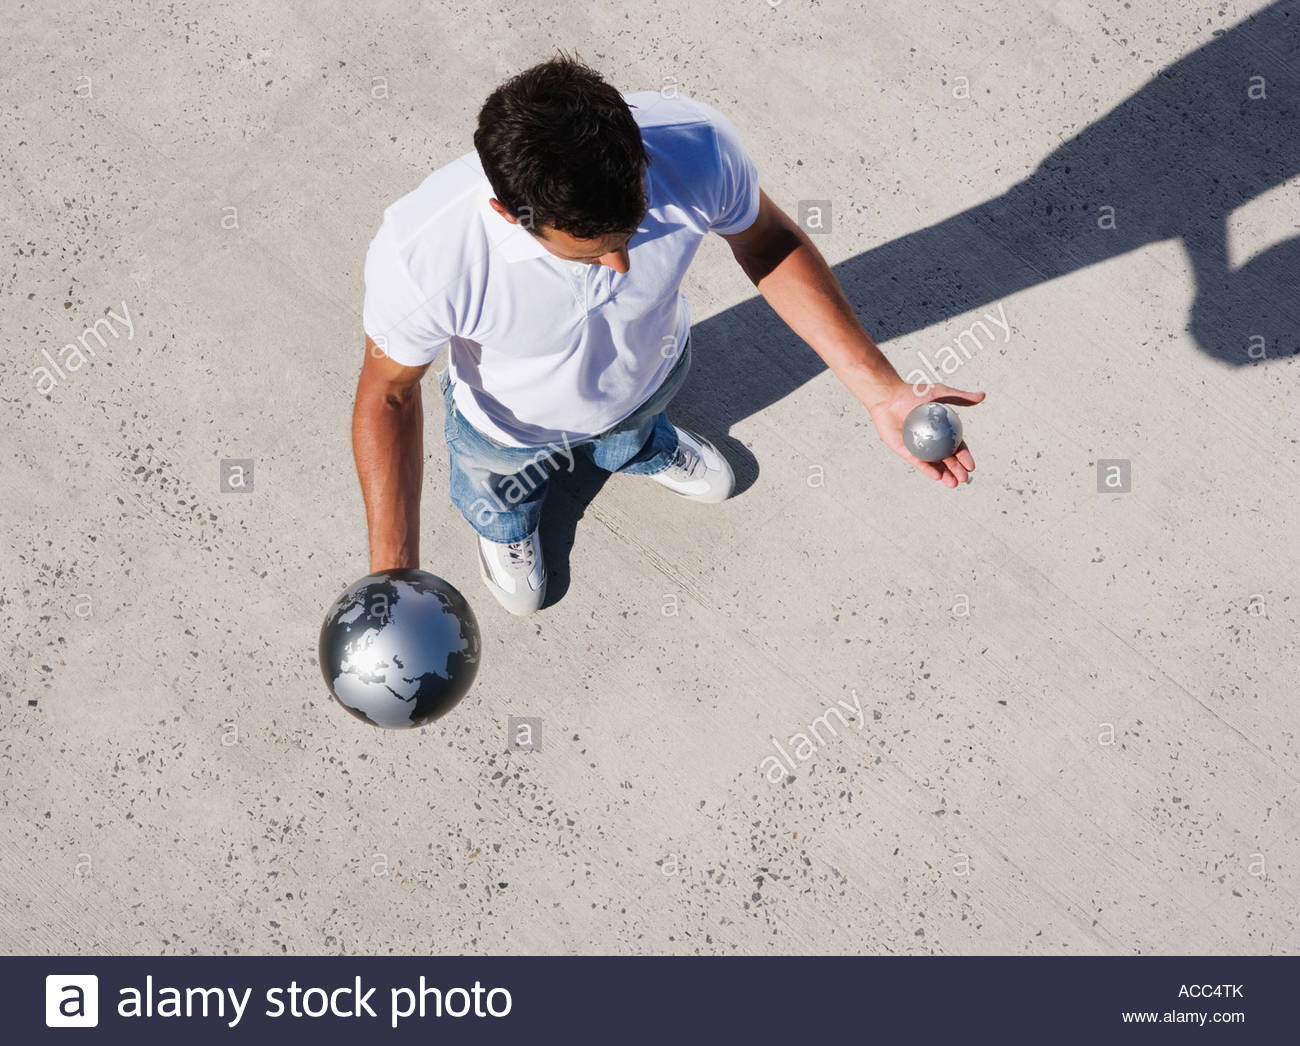 Aerial View of man holding large and small globes outdoors - Stock Image